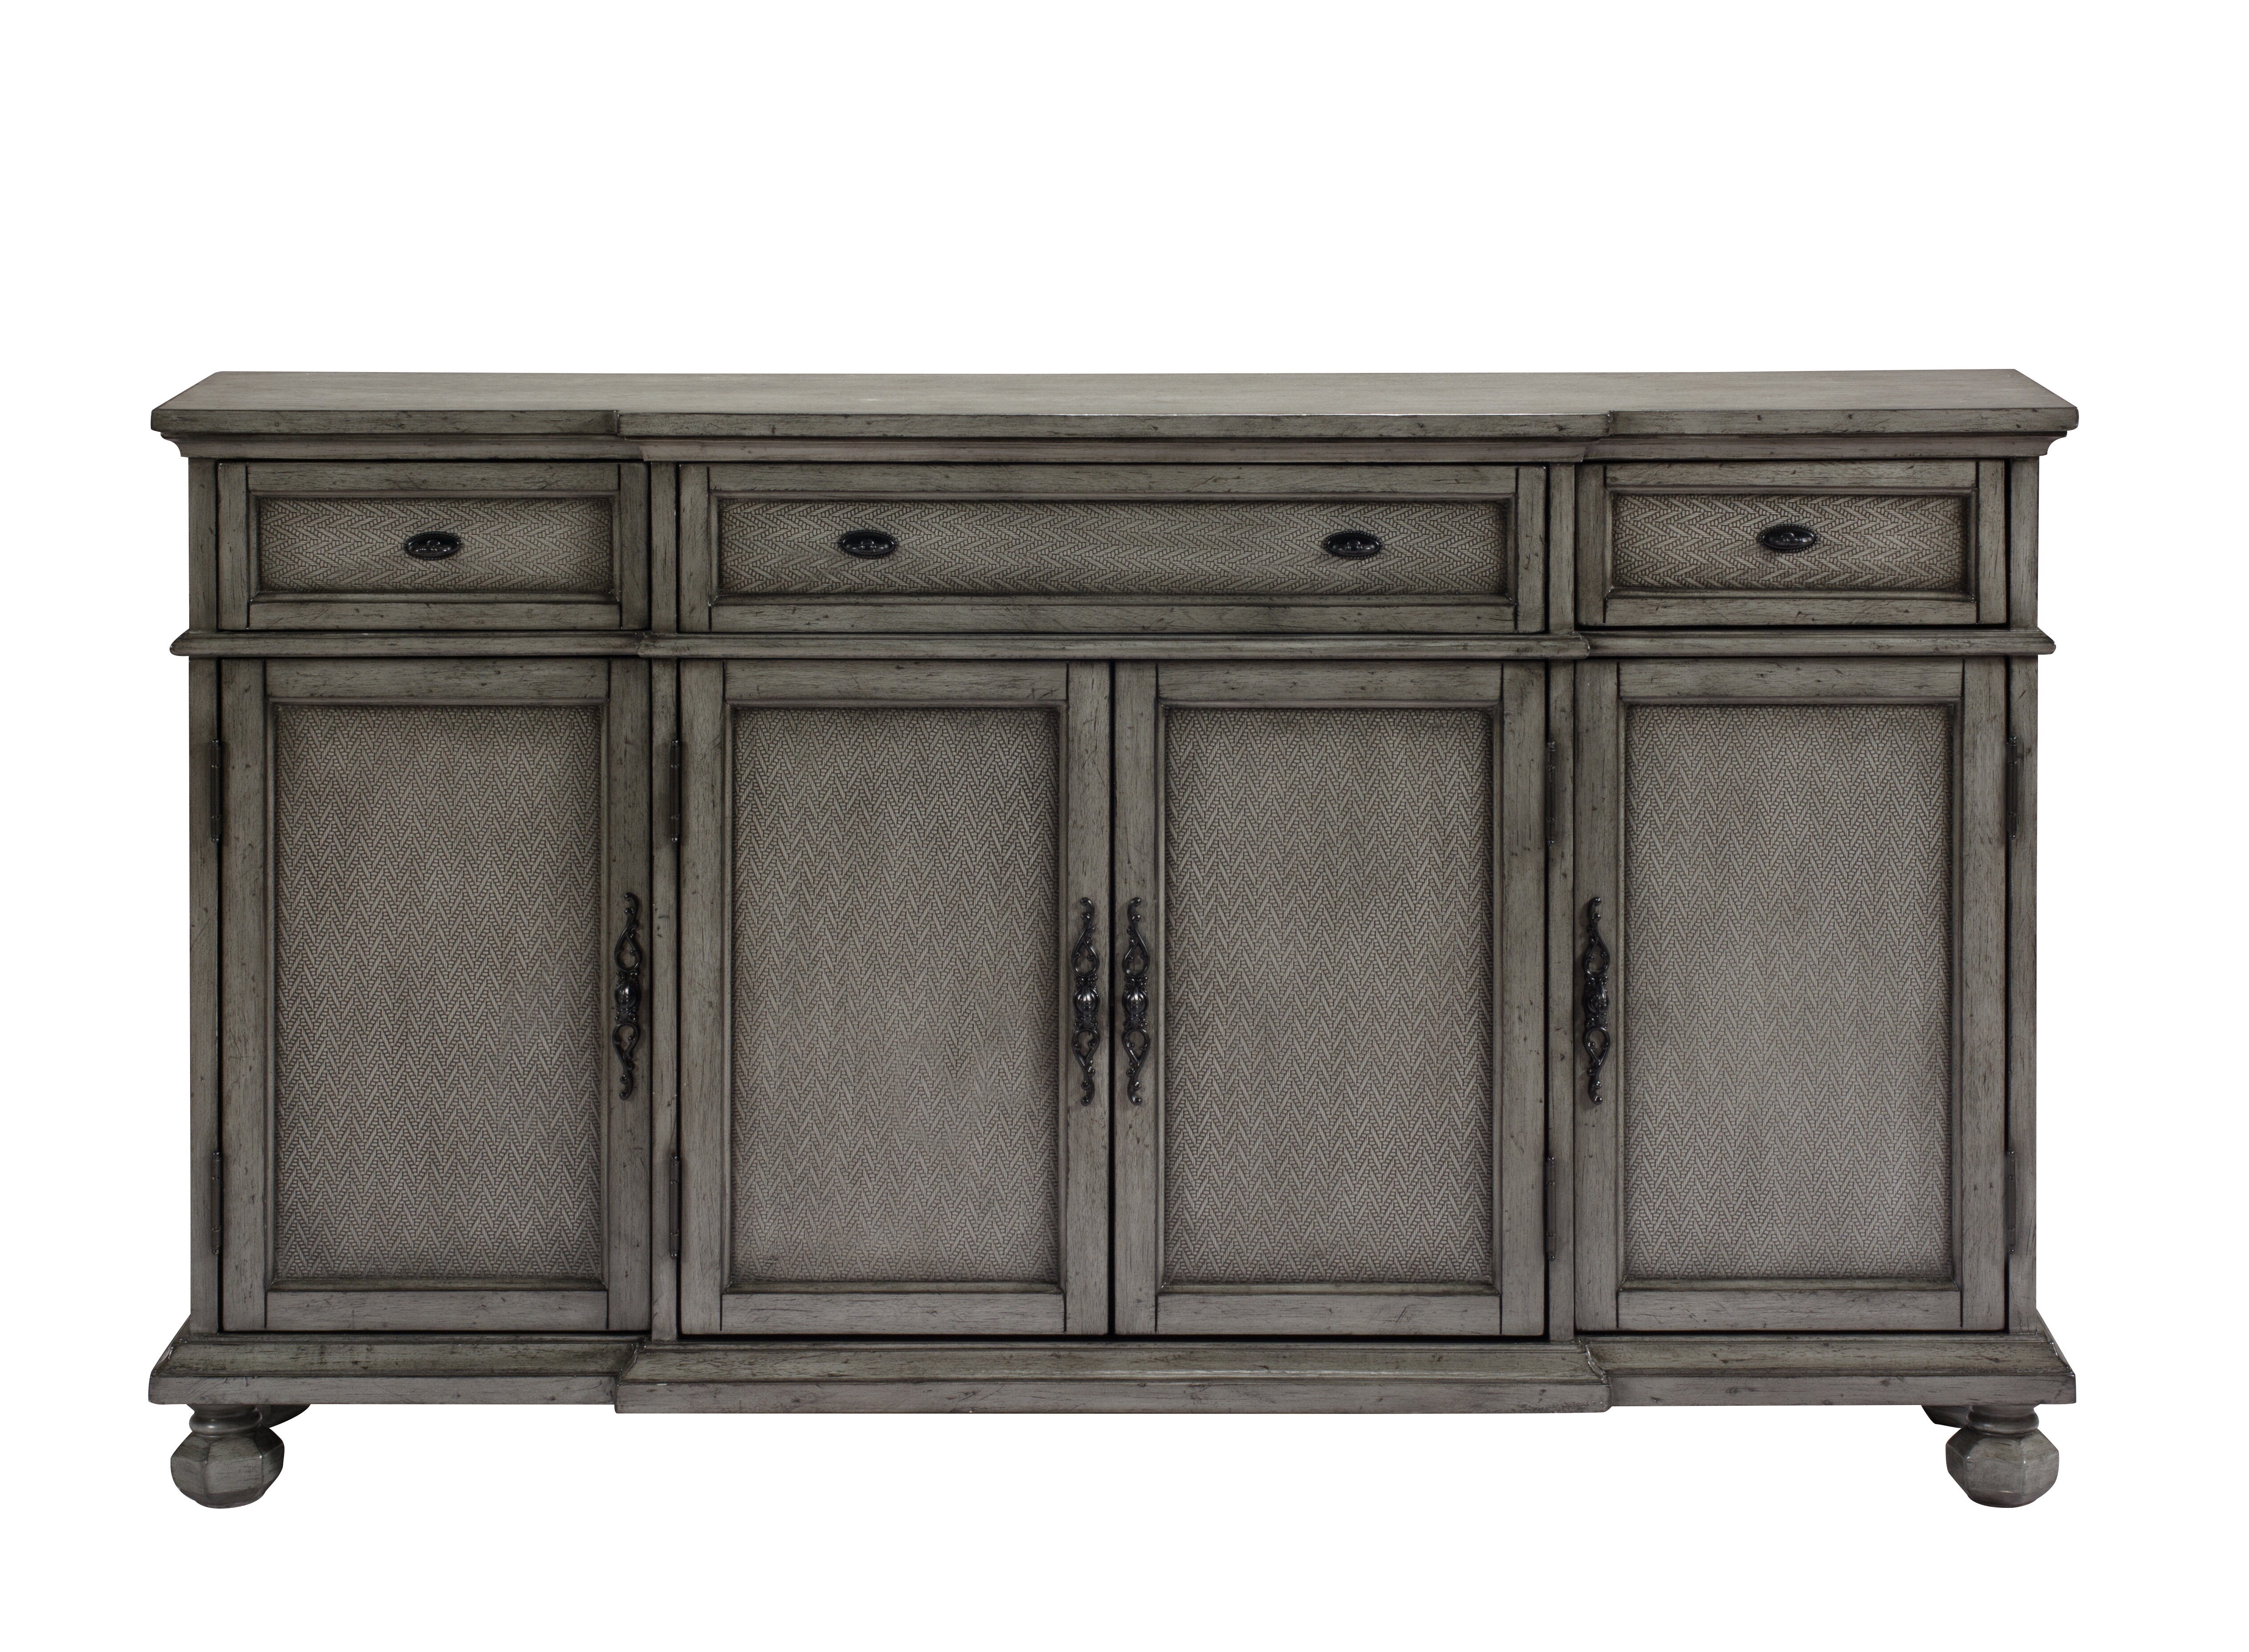 Giulia 3 Drawer Credenza For Cazenovia Charnley Sideboards (View 13 of 30)